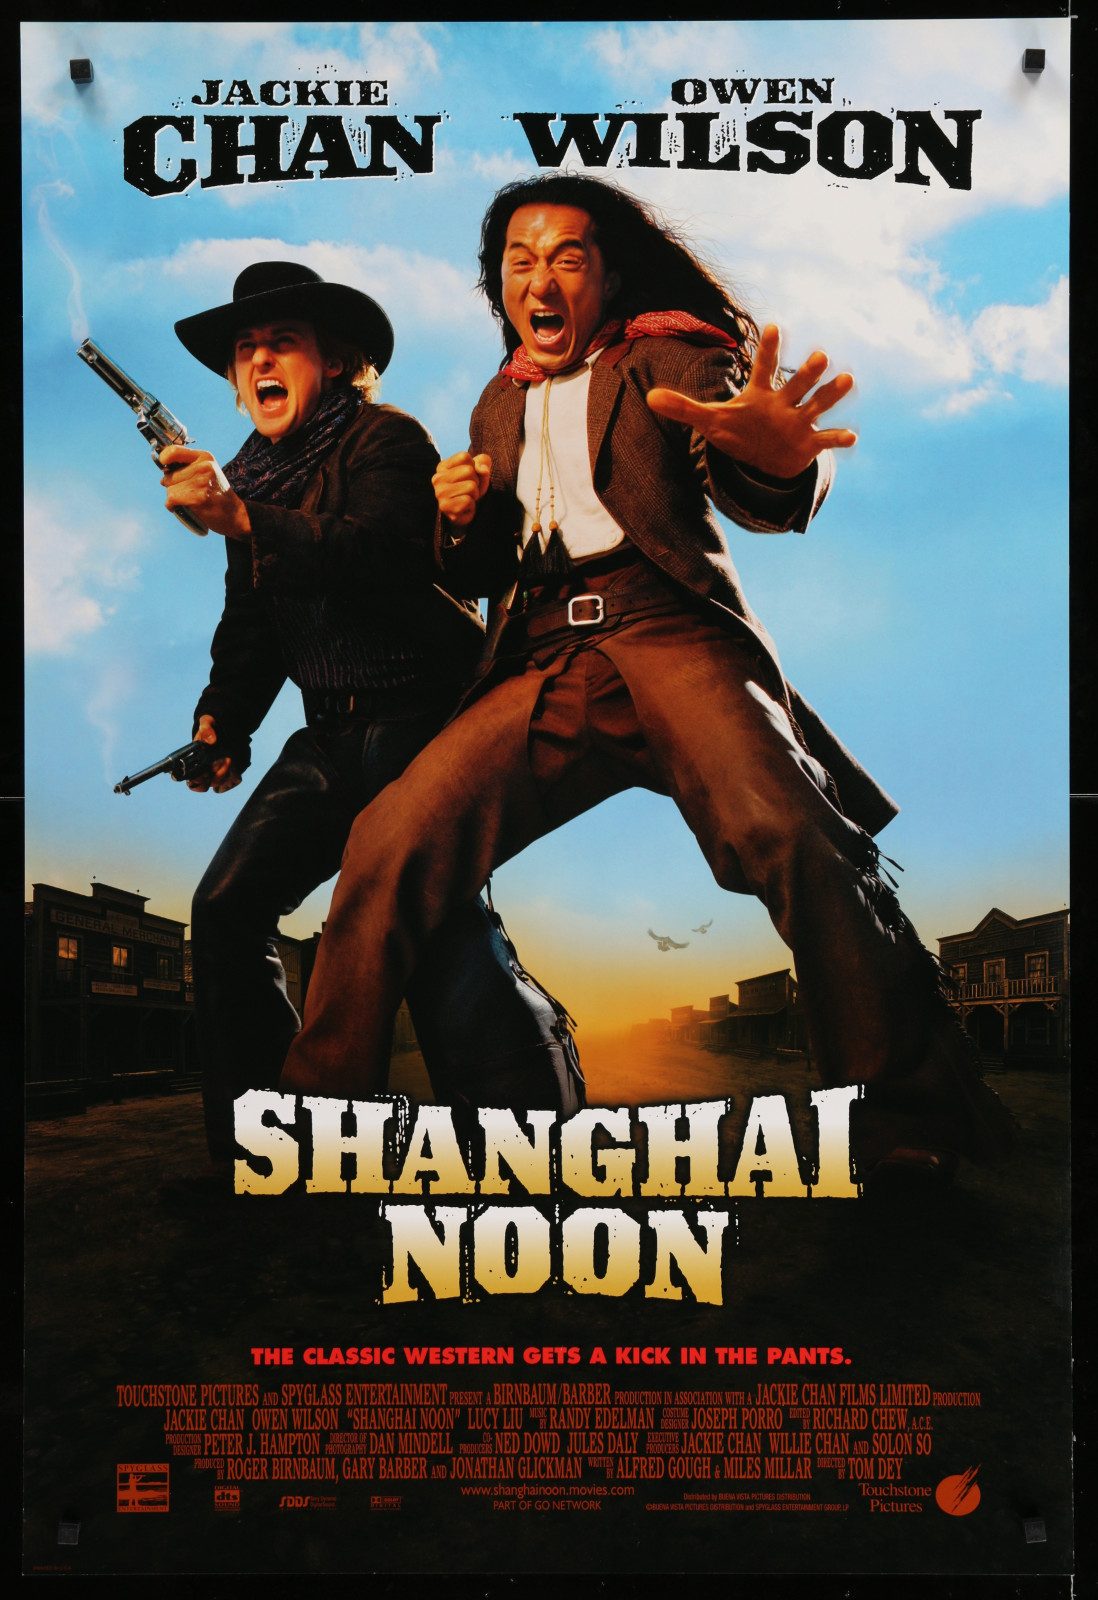 Shanghai Noon 2A366 A Part Of A Lot 29 Unfolded Double-Sided 27X40 One-Sheets '90S-00S Great Movie Images!